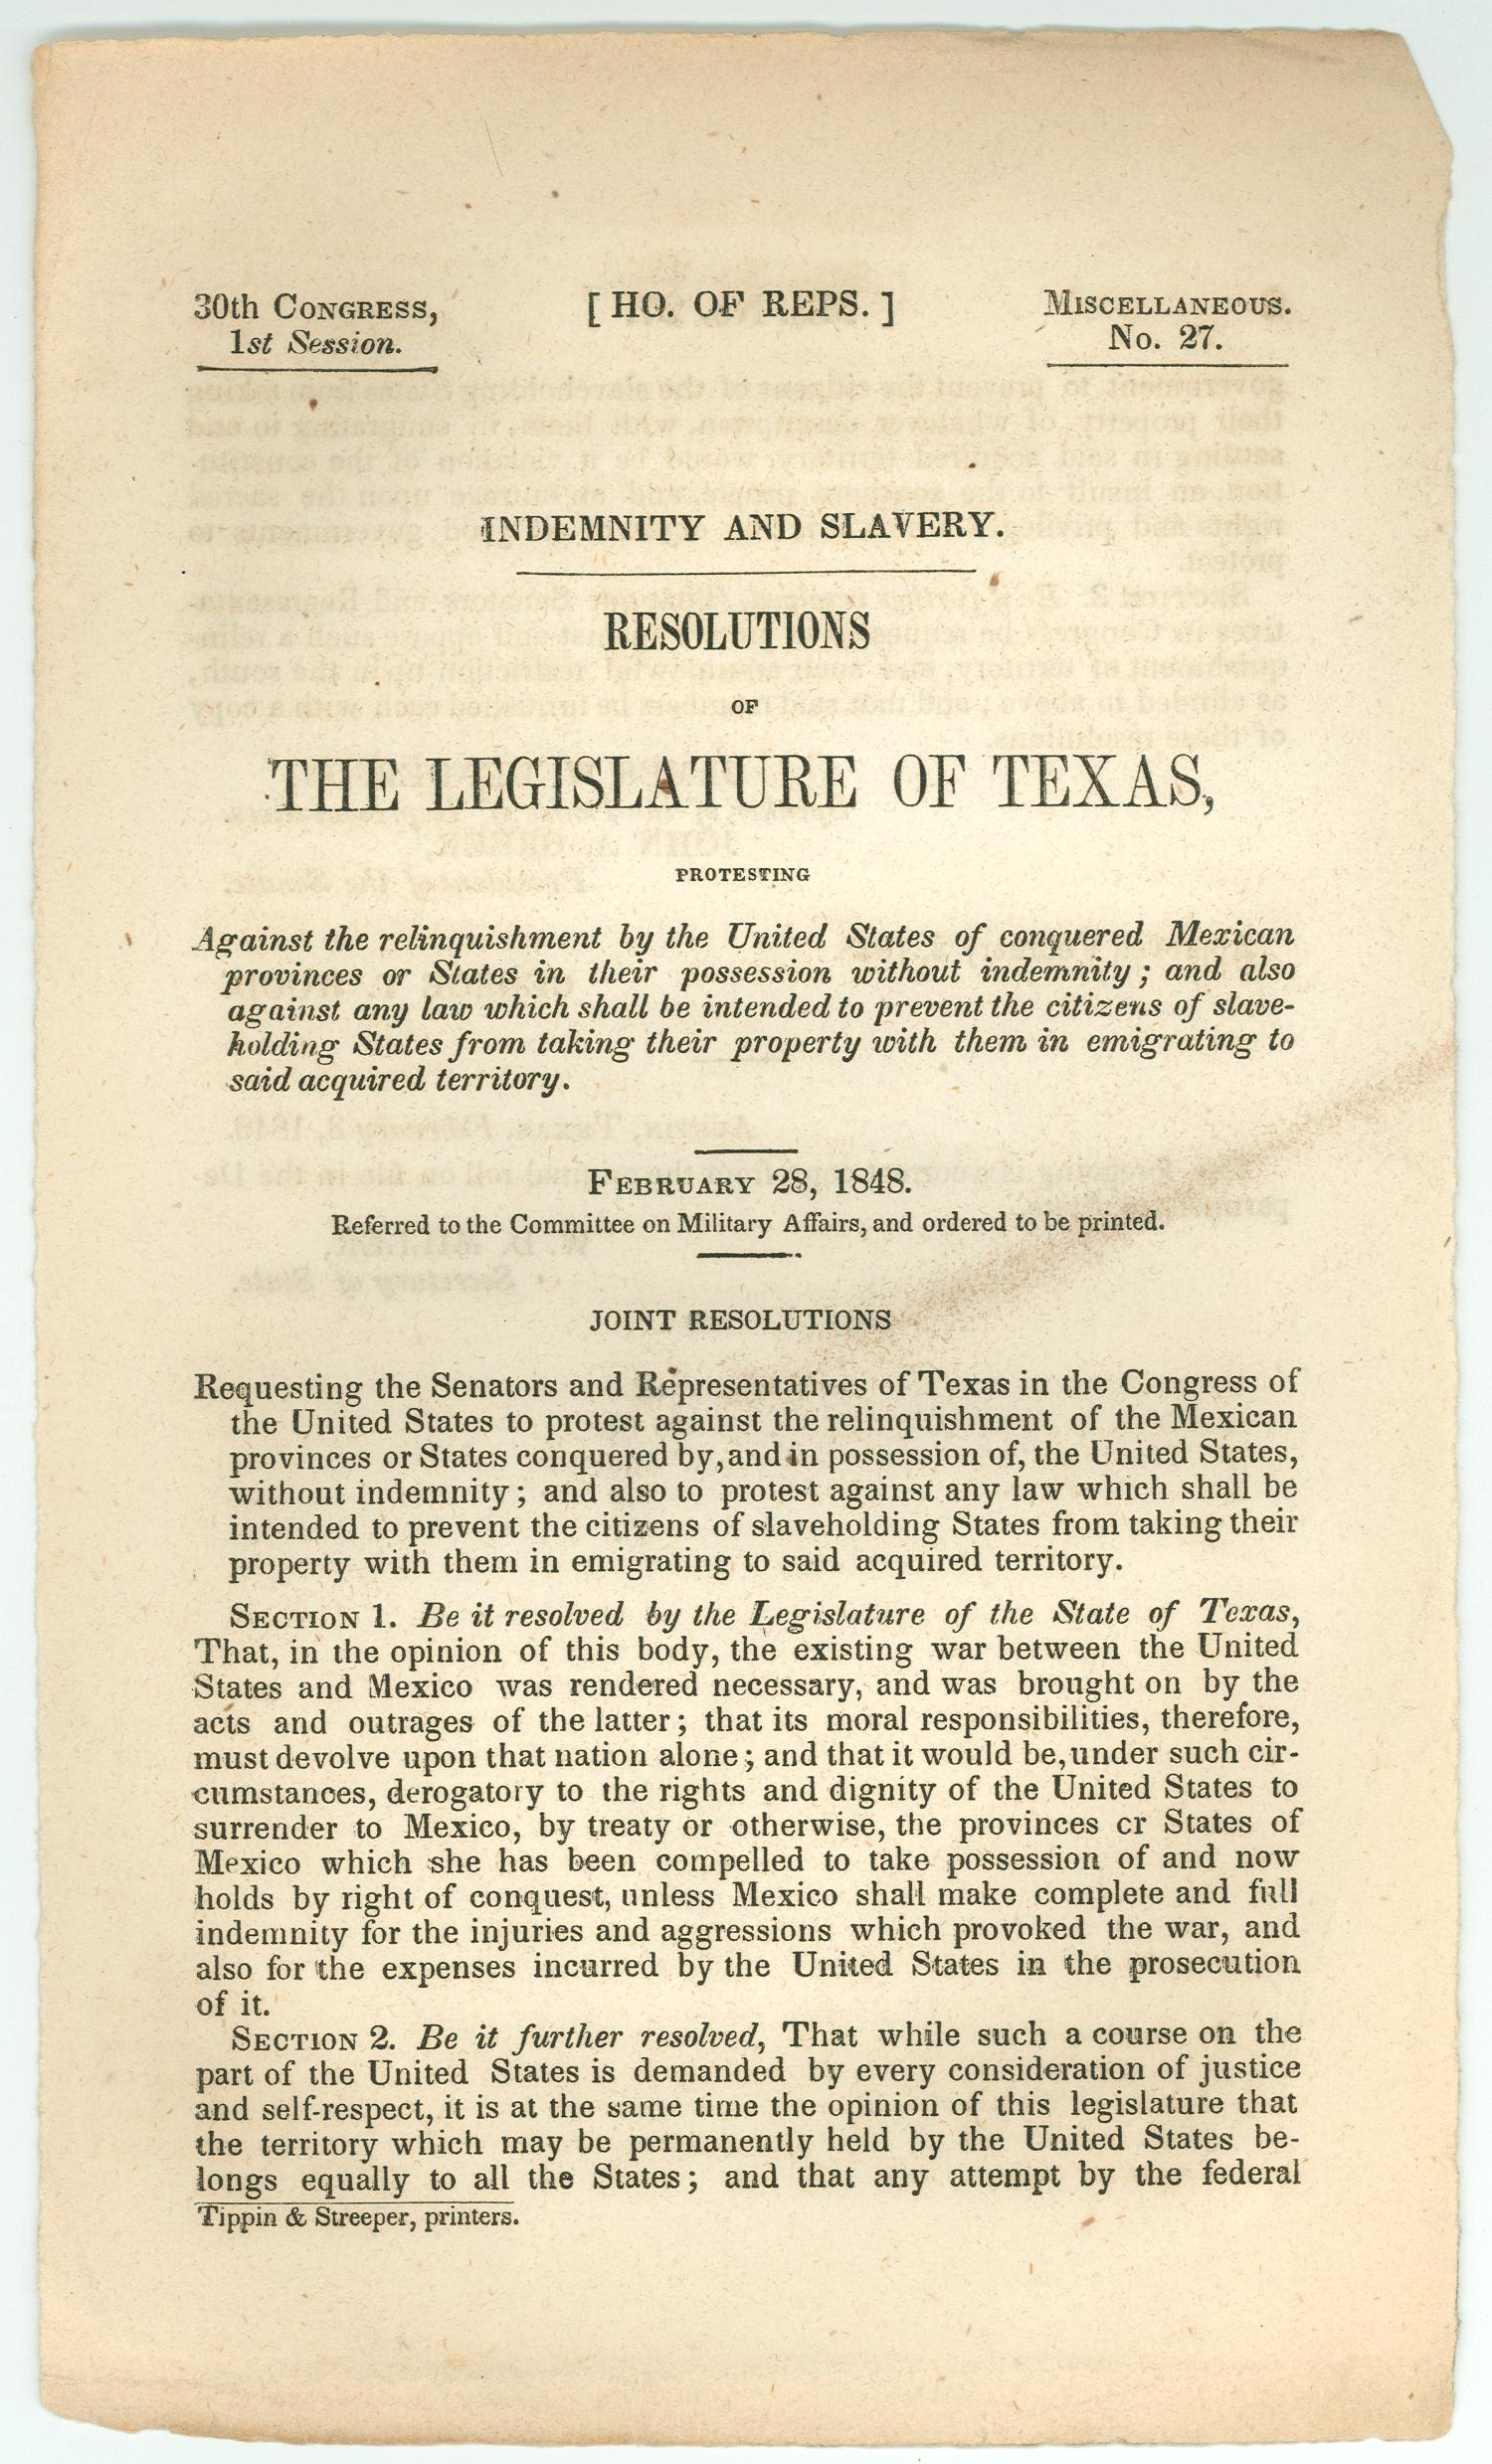 Indemnity and Slavery: Resolutions of the Legislature of Texas                                                                                                      [Sequence #]: 1 of 2